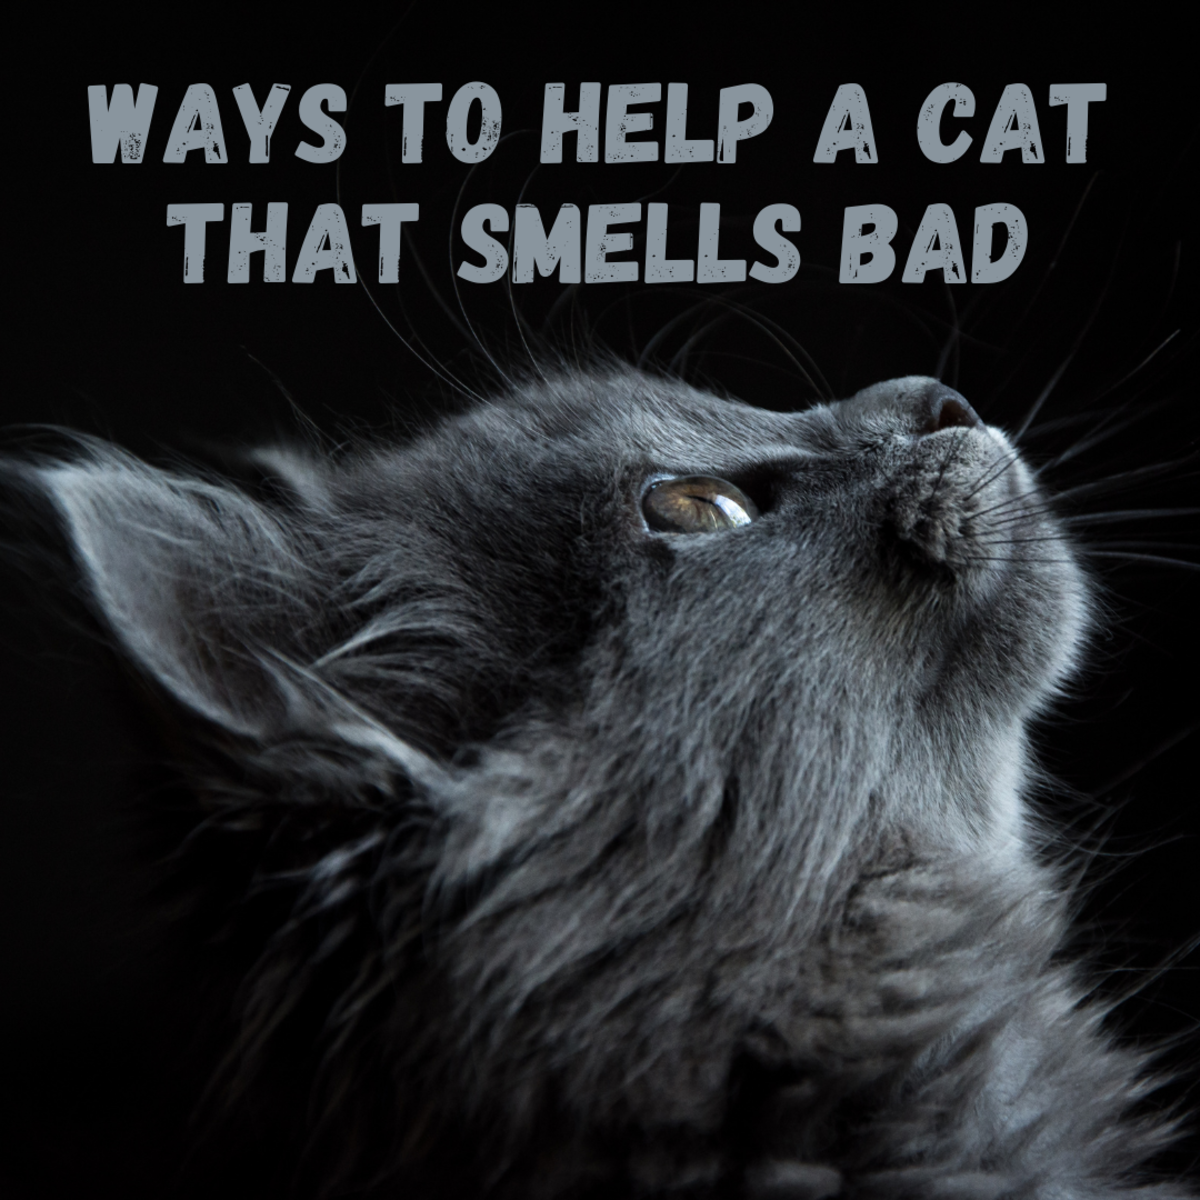 It's not natural for a cat to smell bad. Find out what might be wrong and how to fix it.